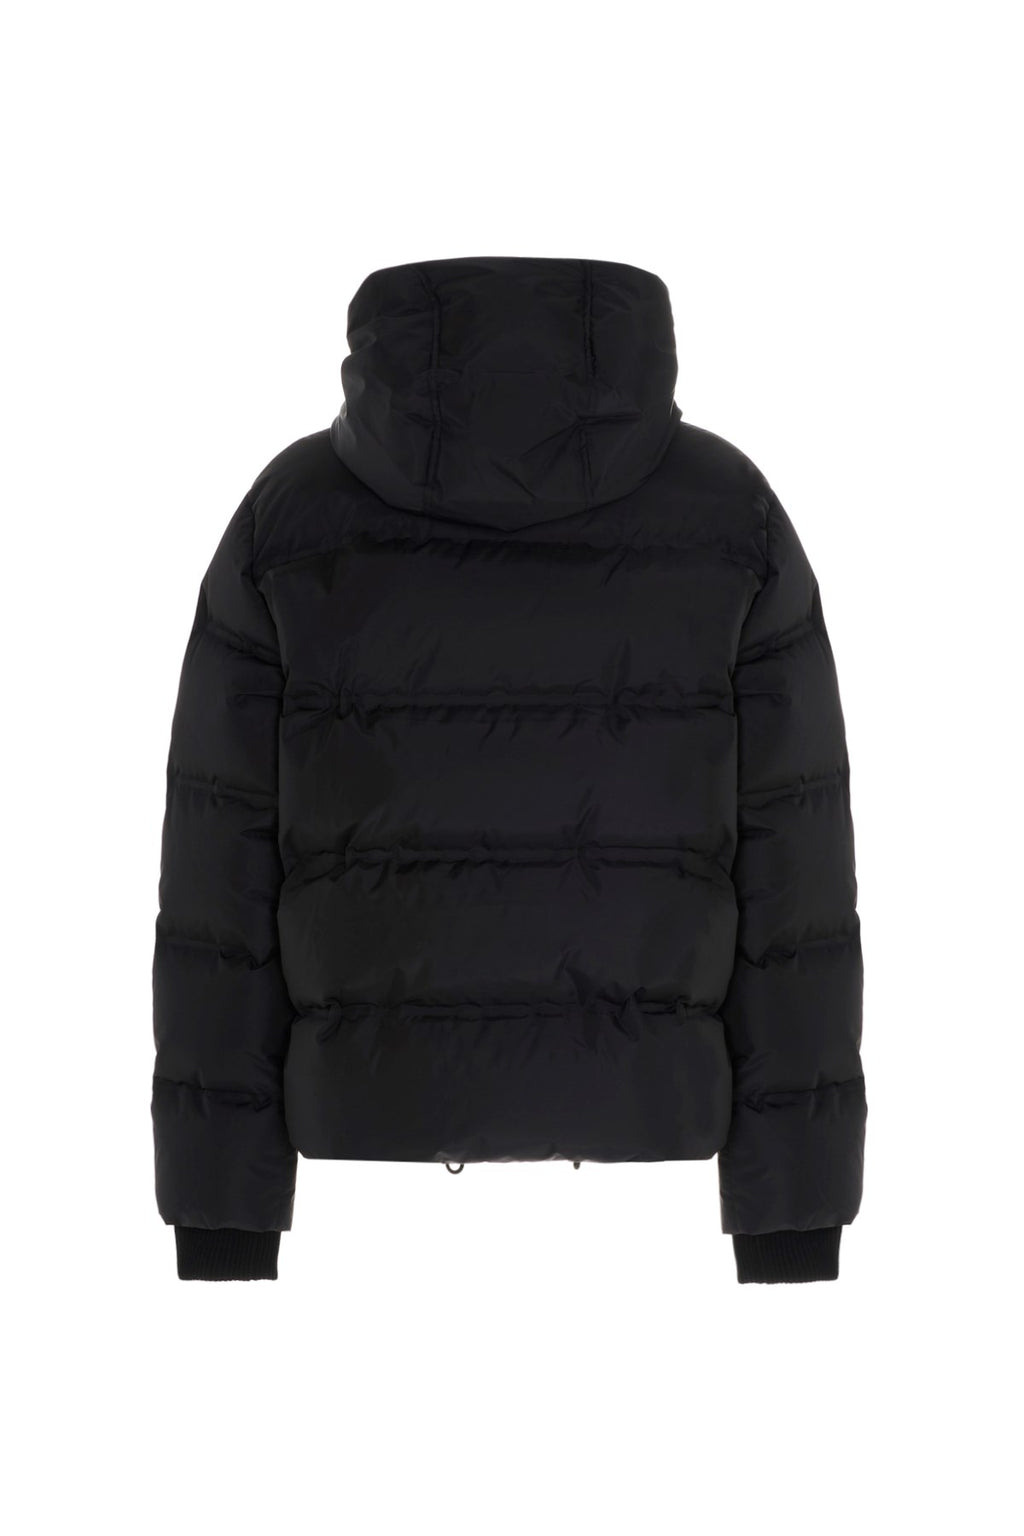 Dsquared2 Padded Logo Jacket